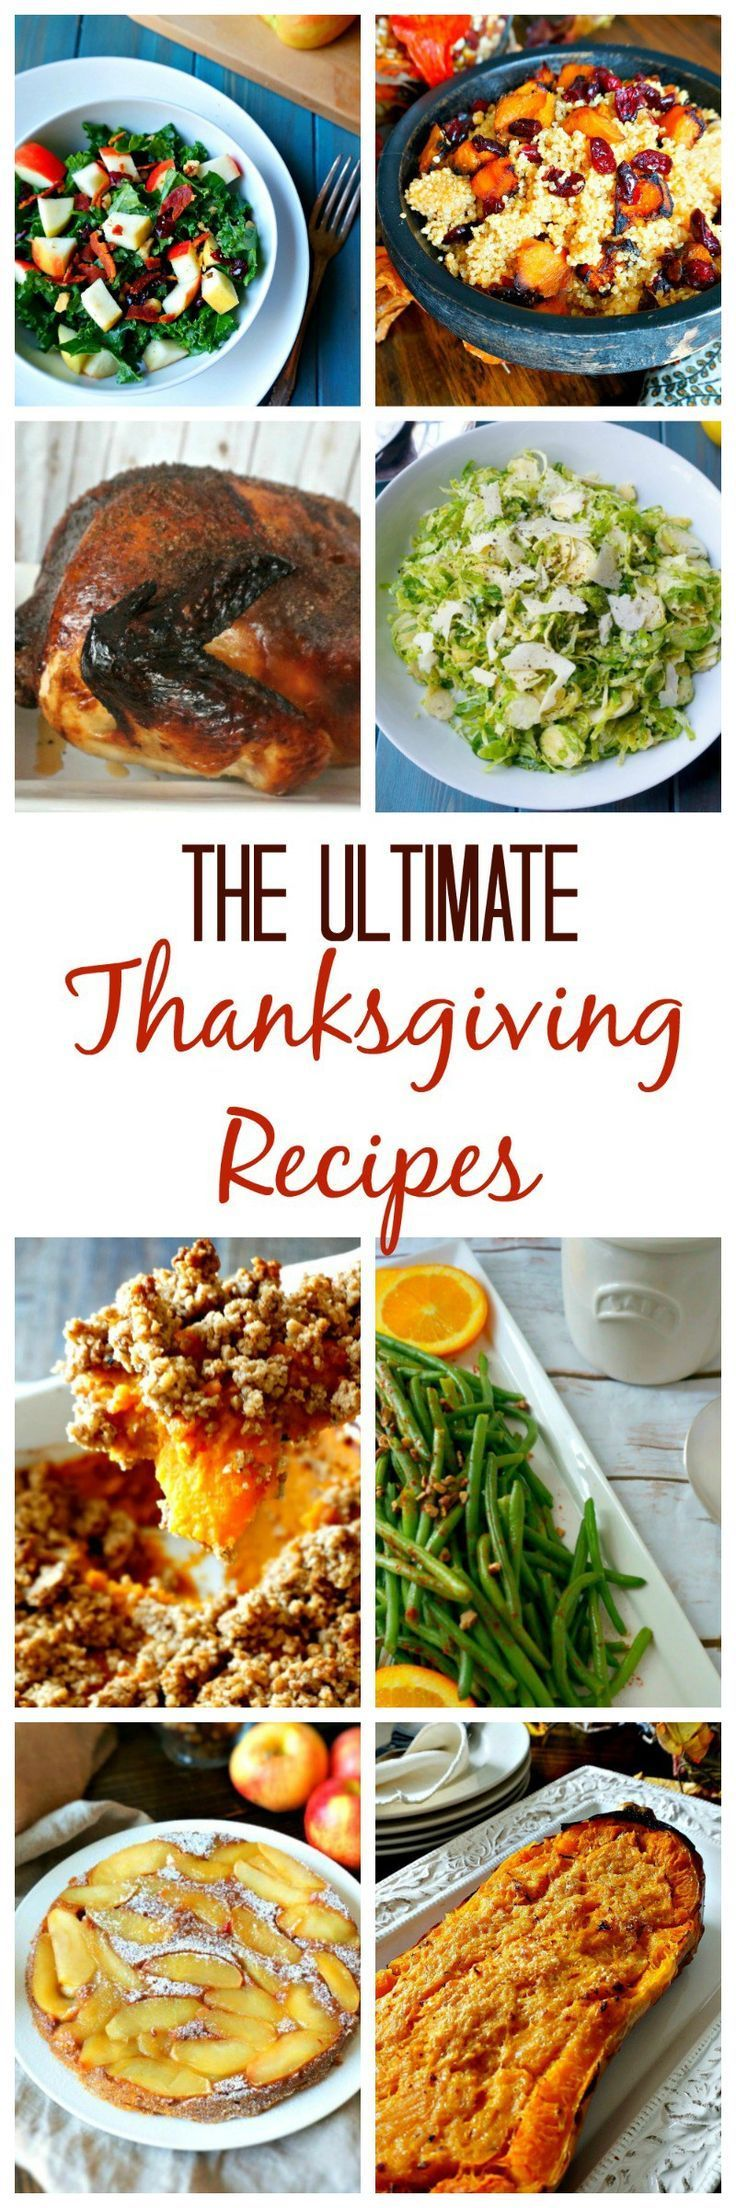 27 best Culinary Delights images on Pinterest | Baking, Cooking food ...